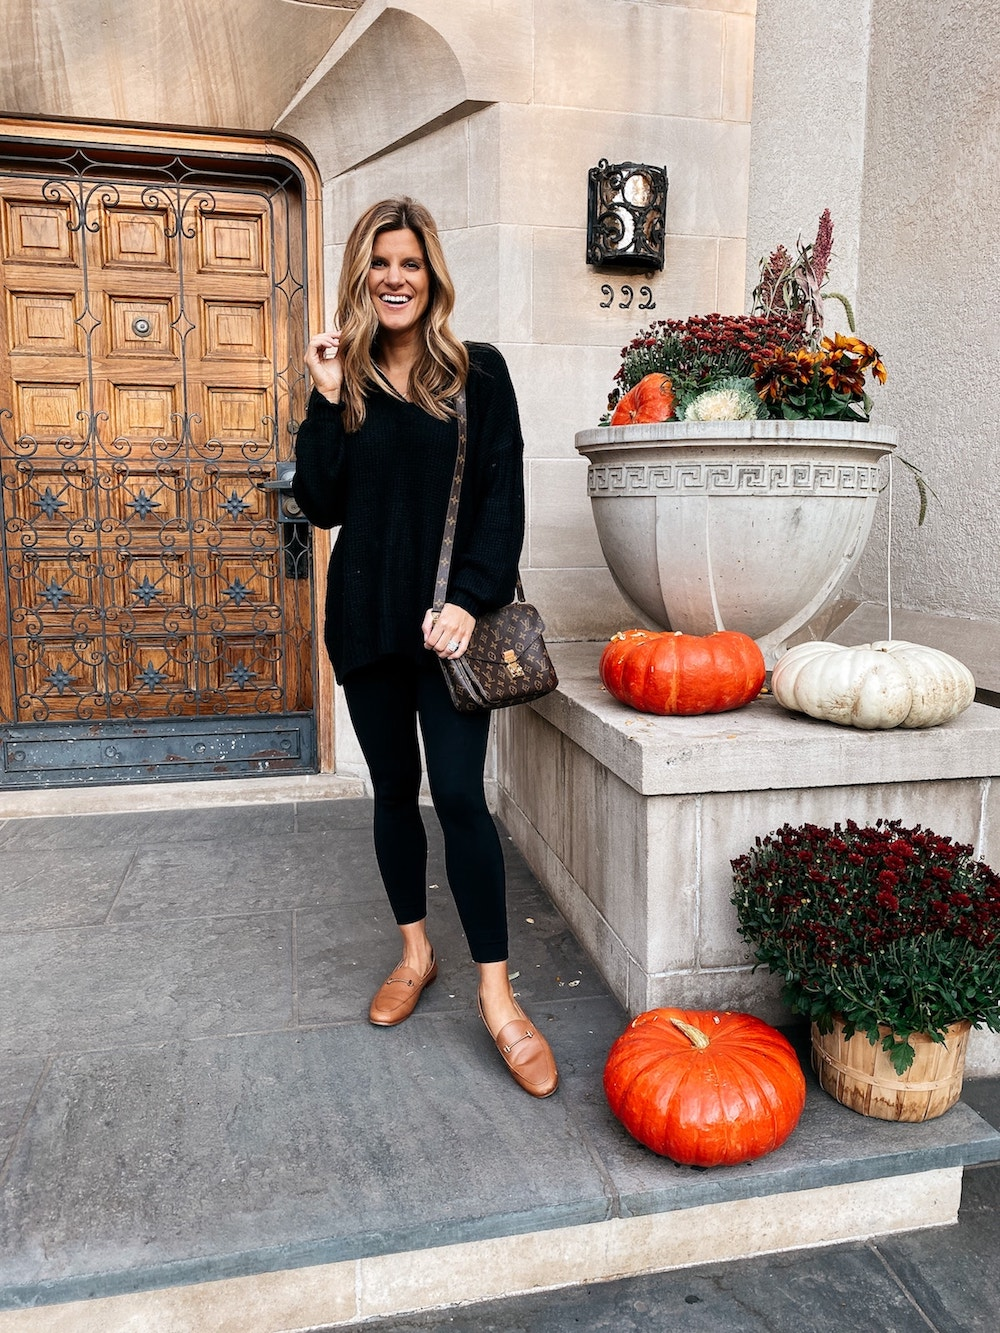 October 2020 - Brighton Butler Fall Outfit Ideas, 2nd trimester outfit with leggings and oversized sweater